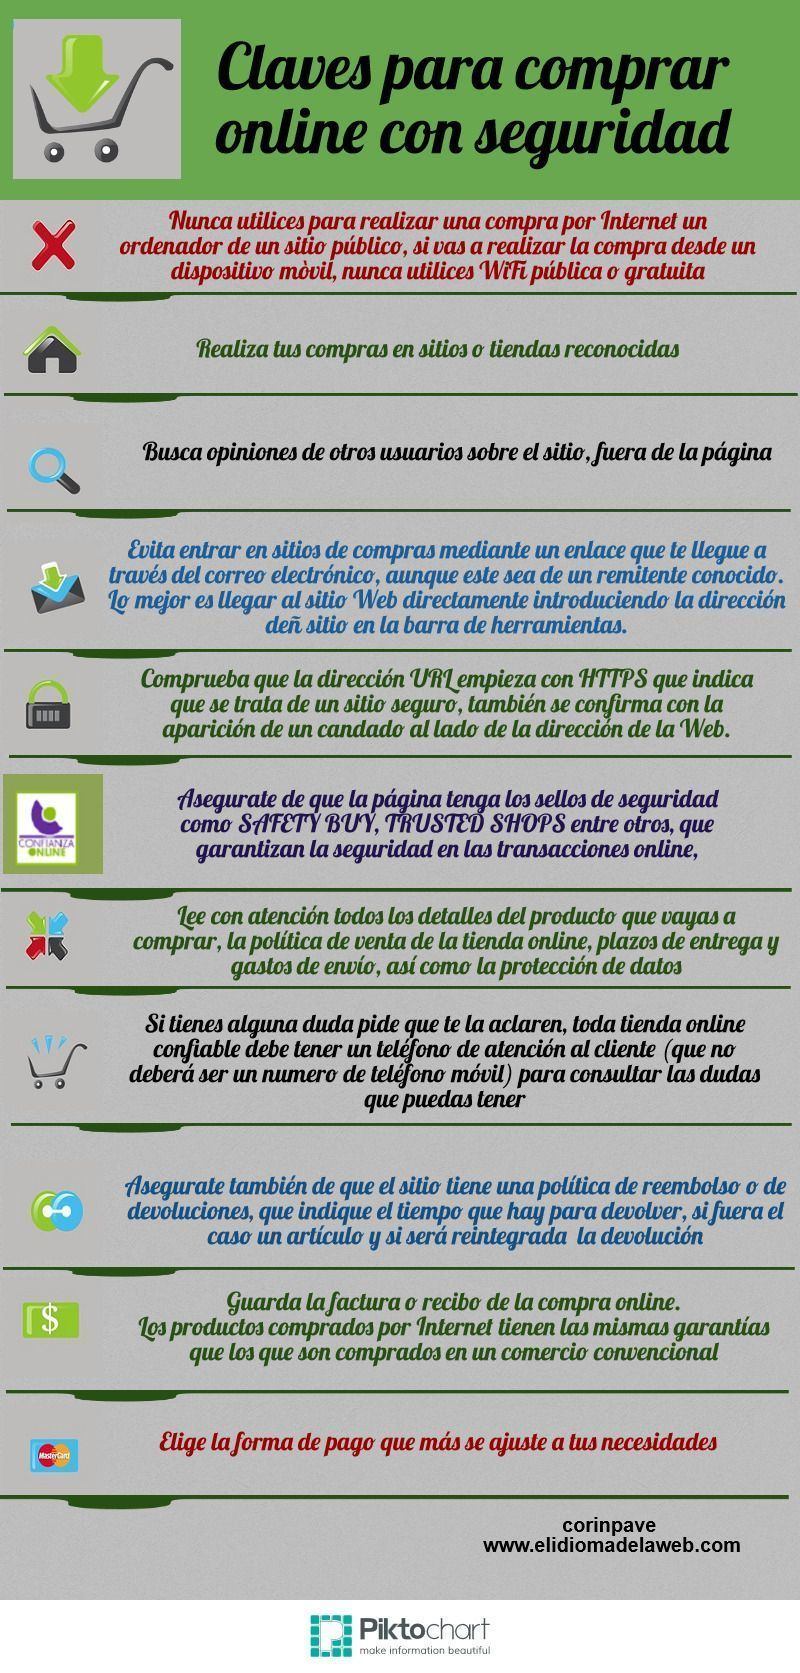 claves para comprar con seguridad a traves de internet